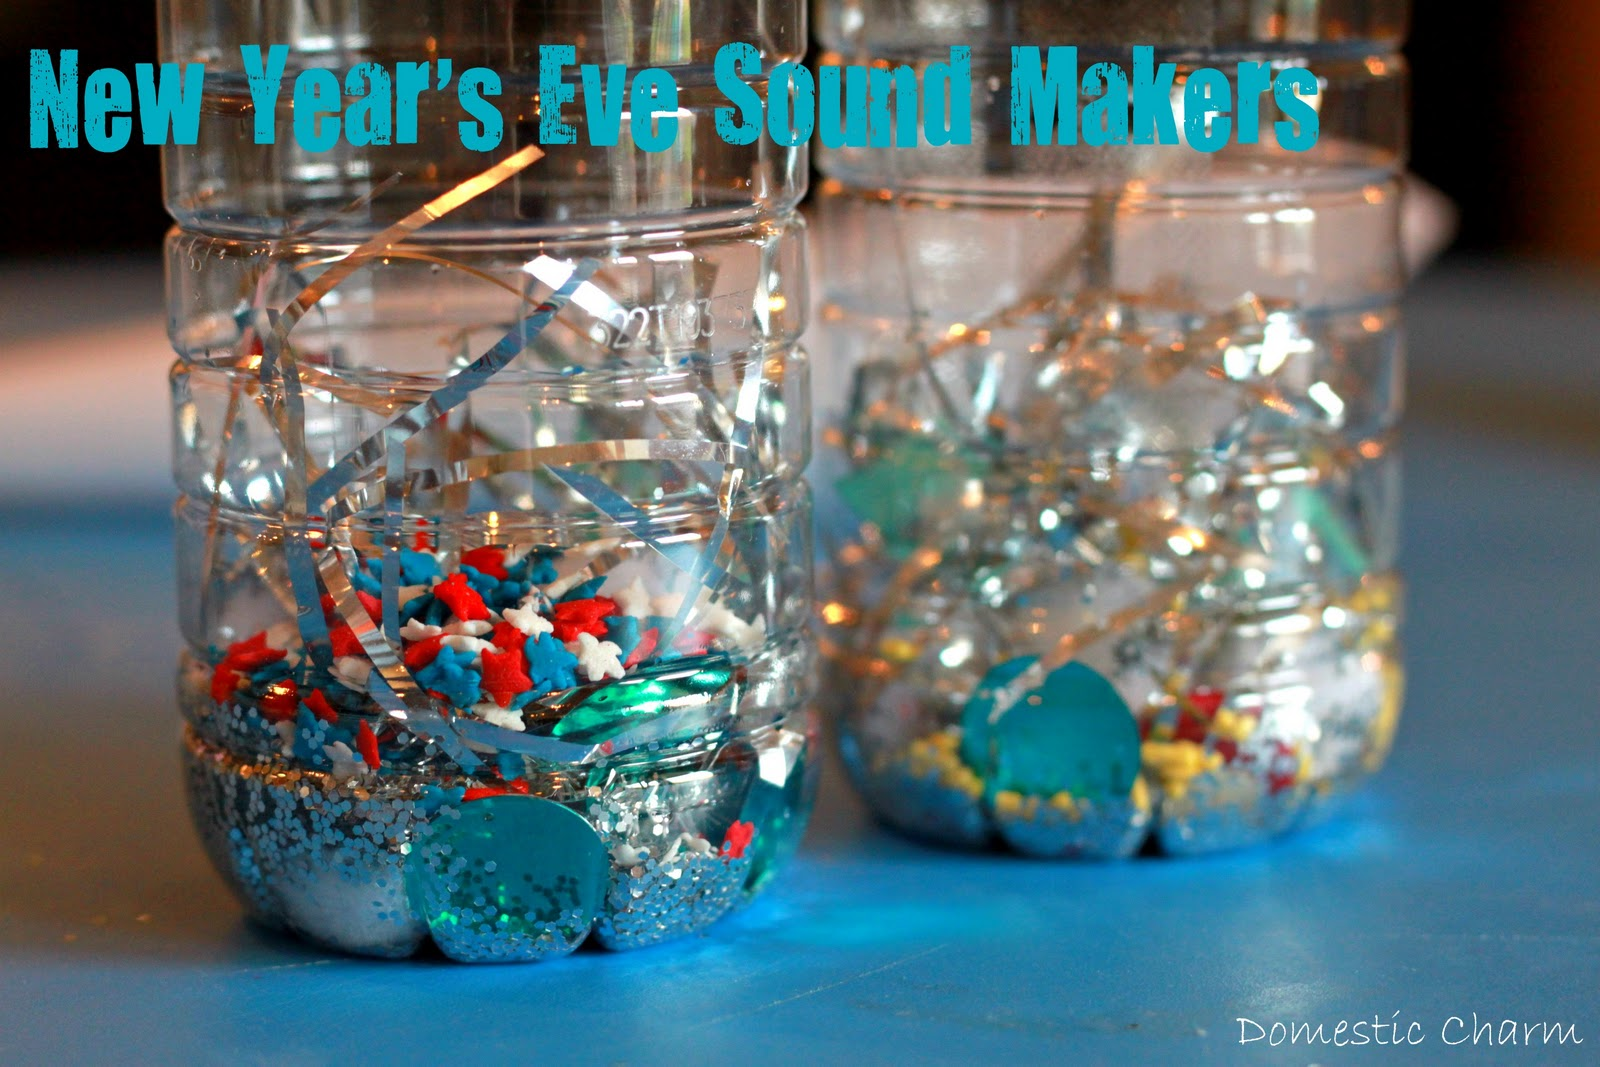 New Years Eve Craft Ideas For Kids Part - 29: New Yearu0027s Eve Sound Makers